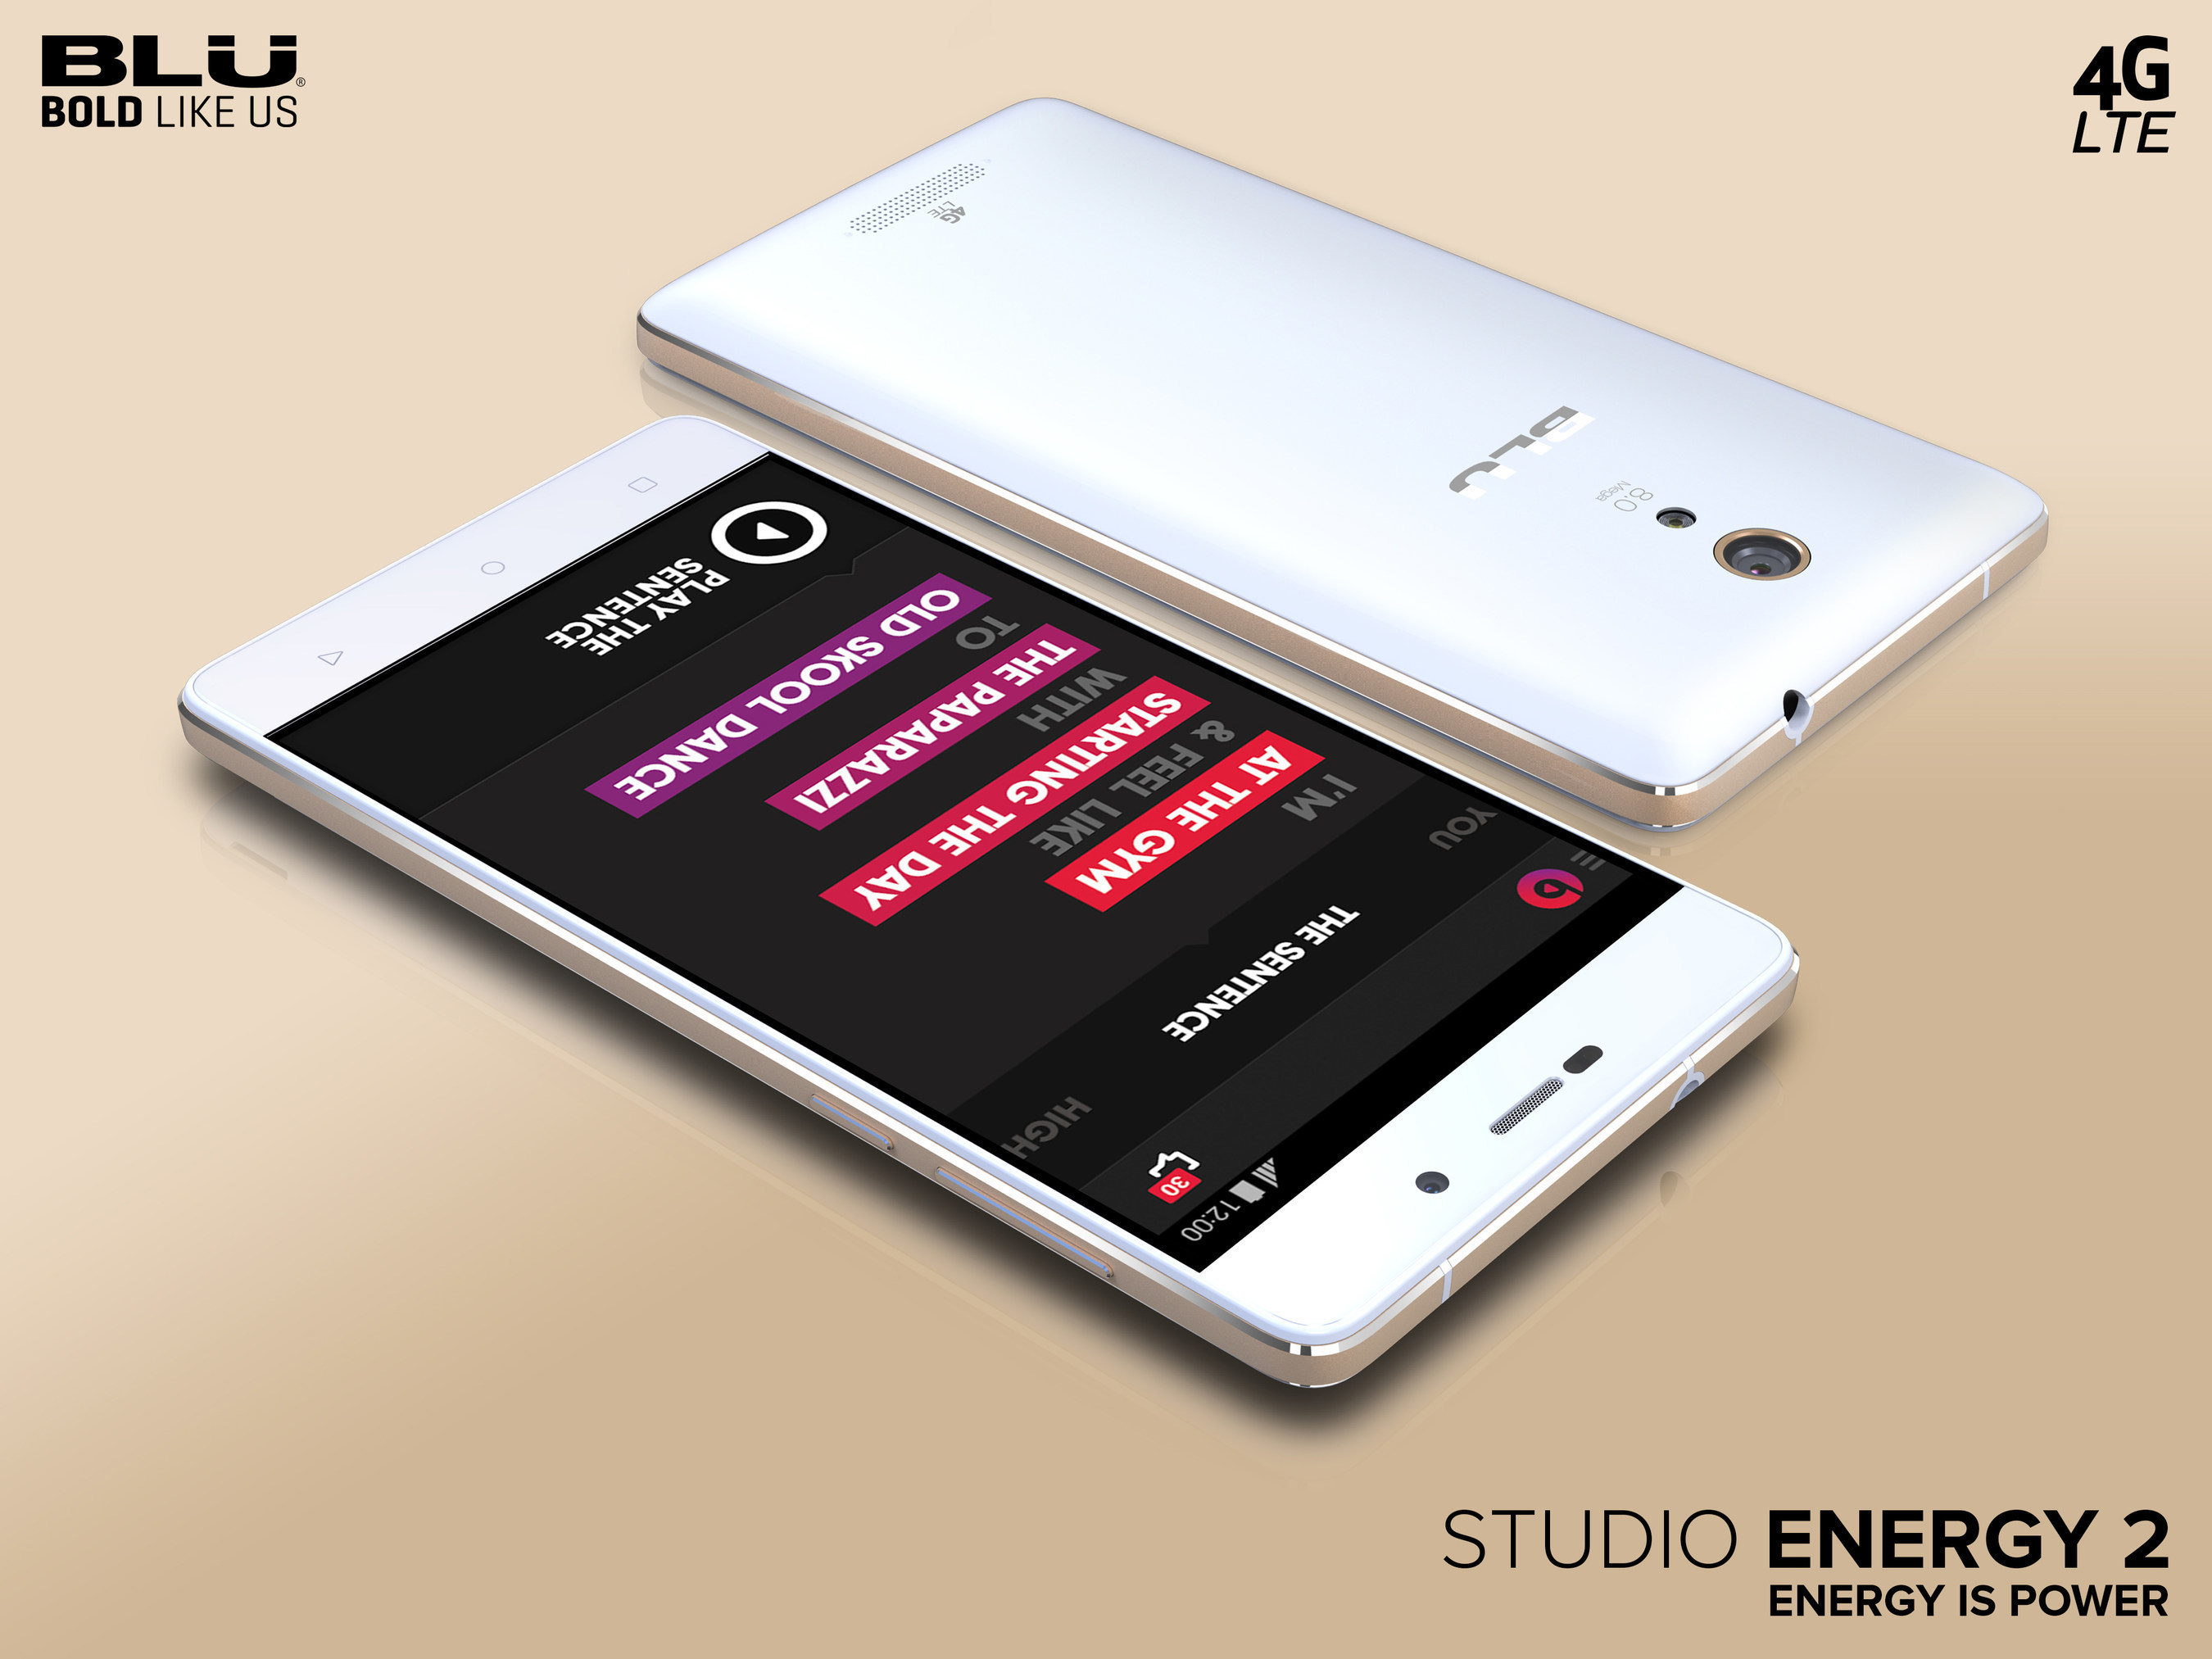 BLU Products Announces Second Generation of Monster Battery ENERGY Series Smartphones with the BLU Studio Energy 2 and BLU Energy X -- Now Available for Purchase on Amazo